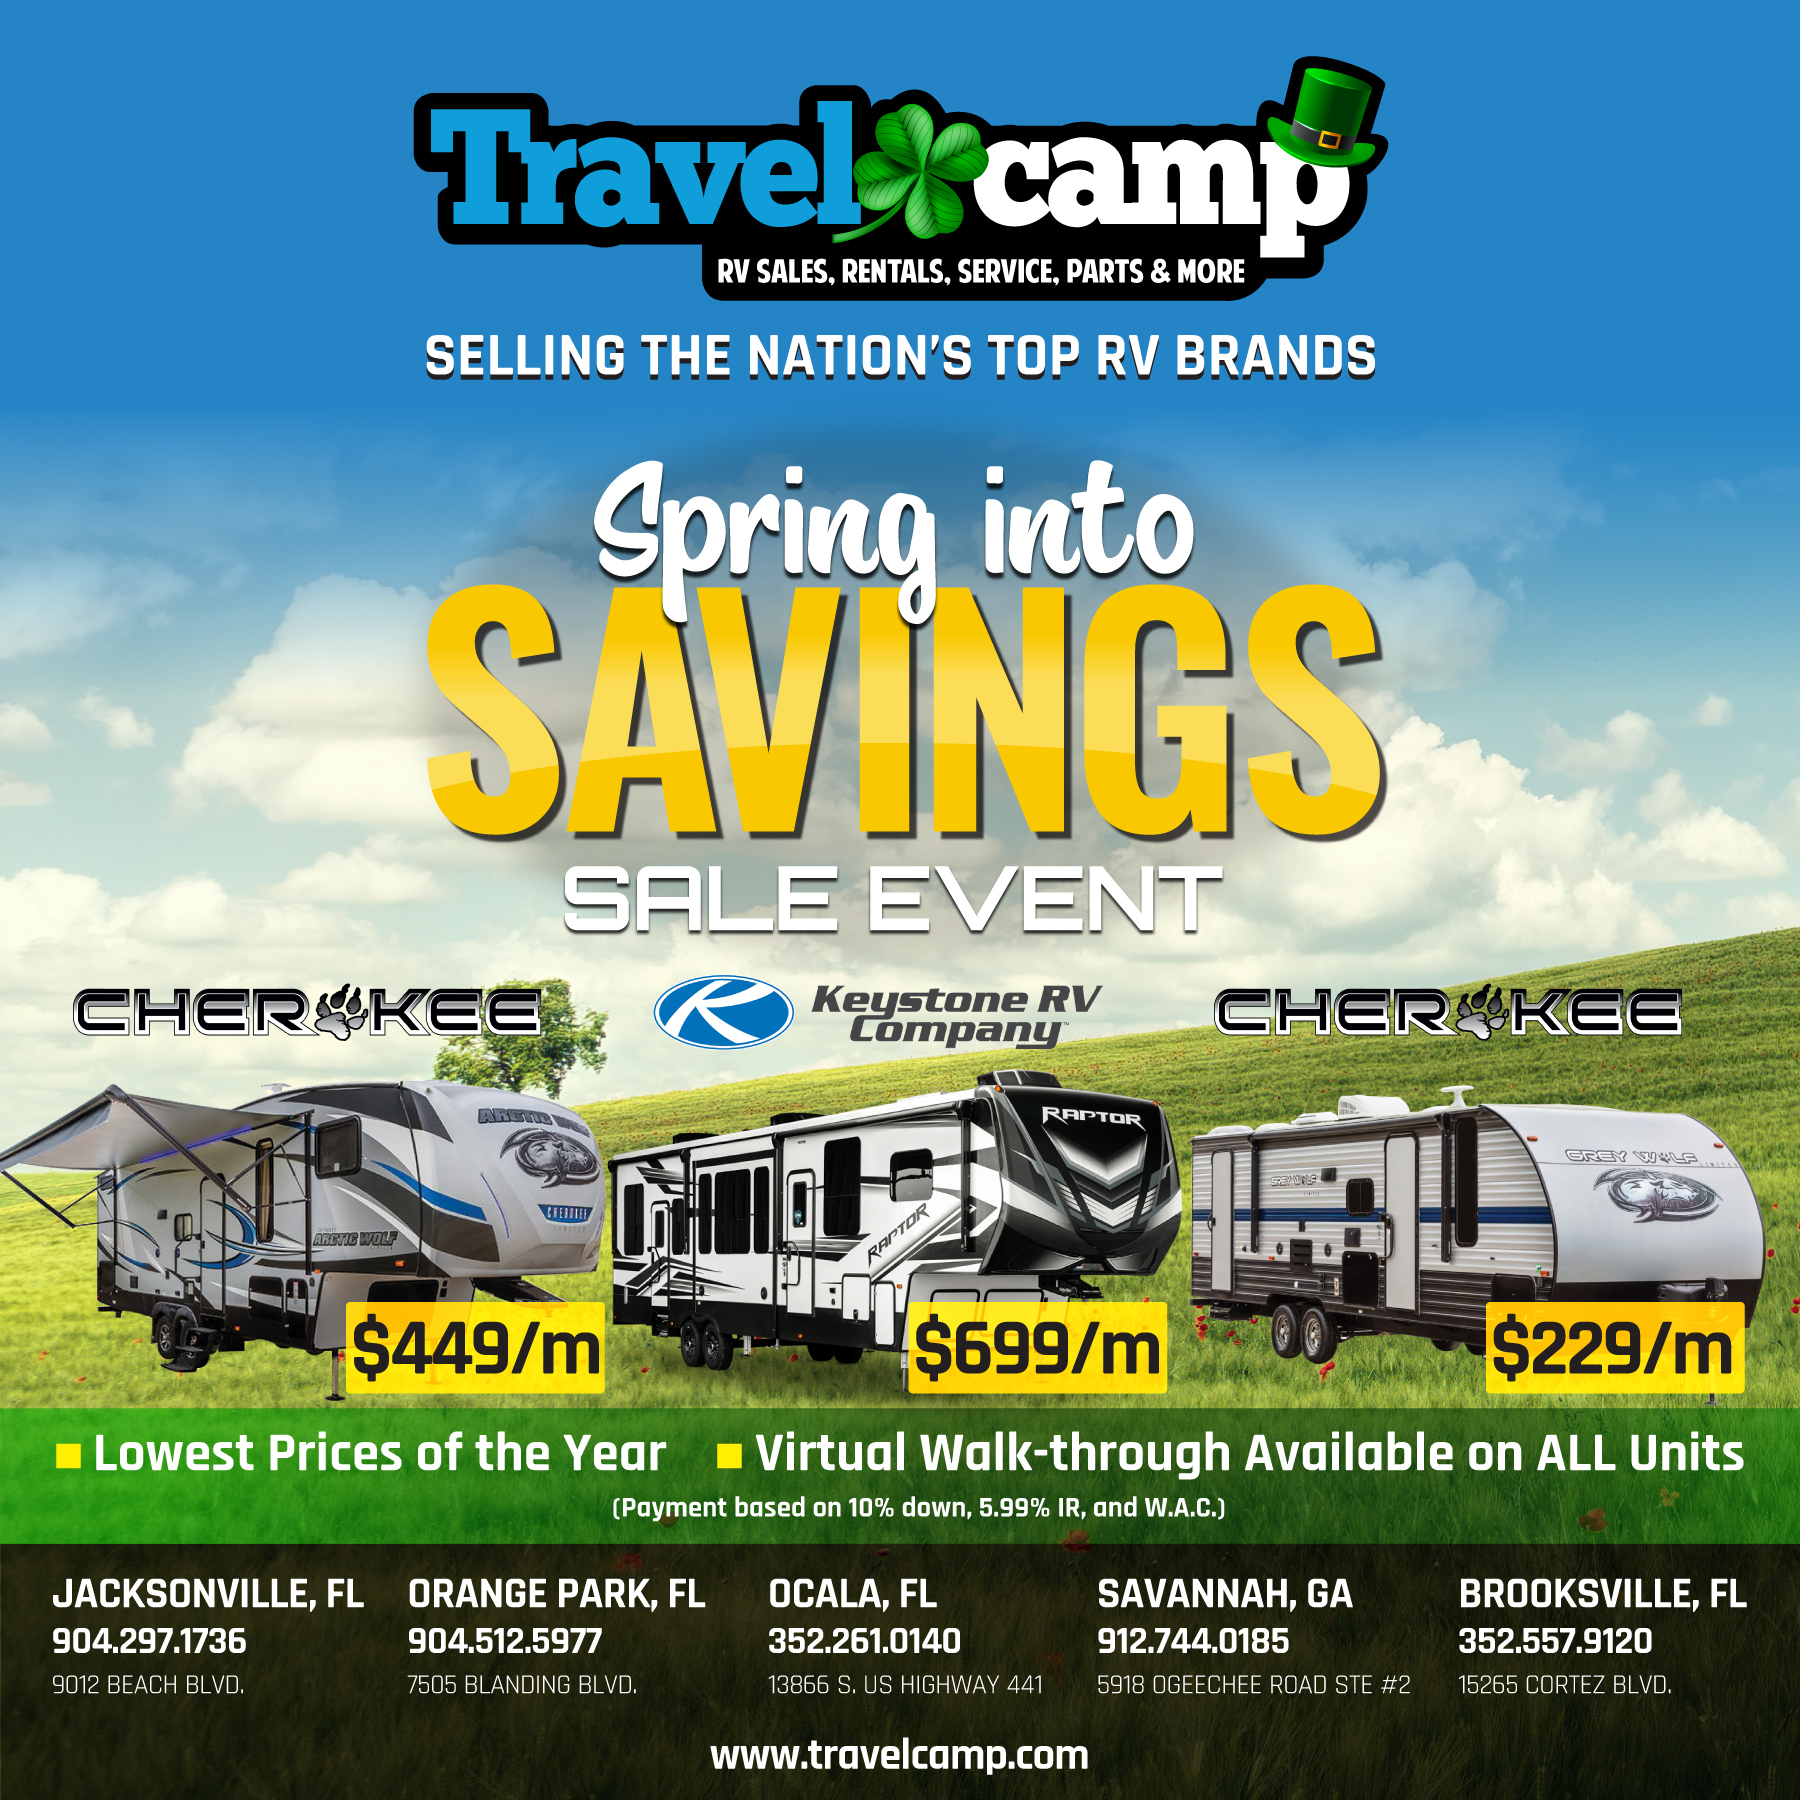 Spring Sale Event | Save Even More | Travelcamp